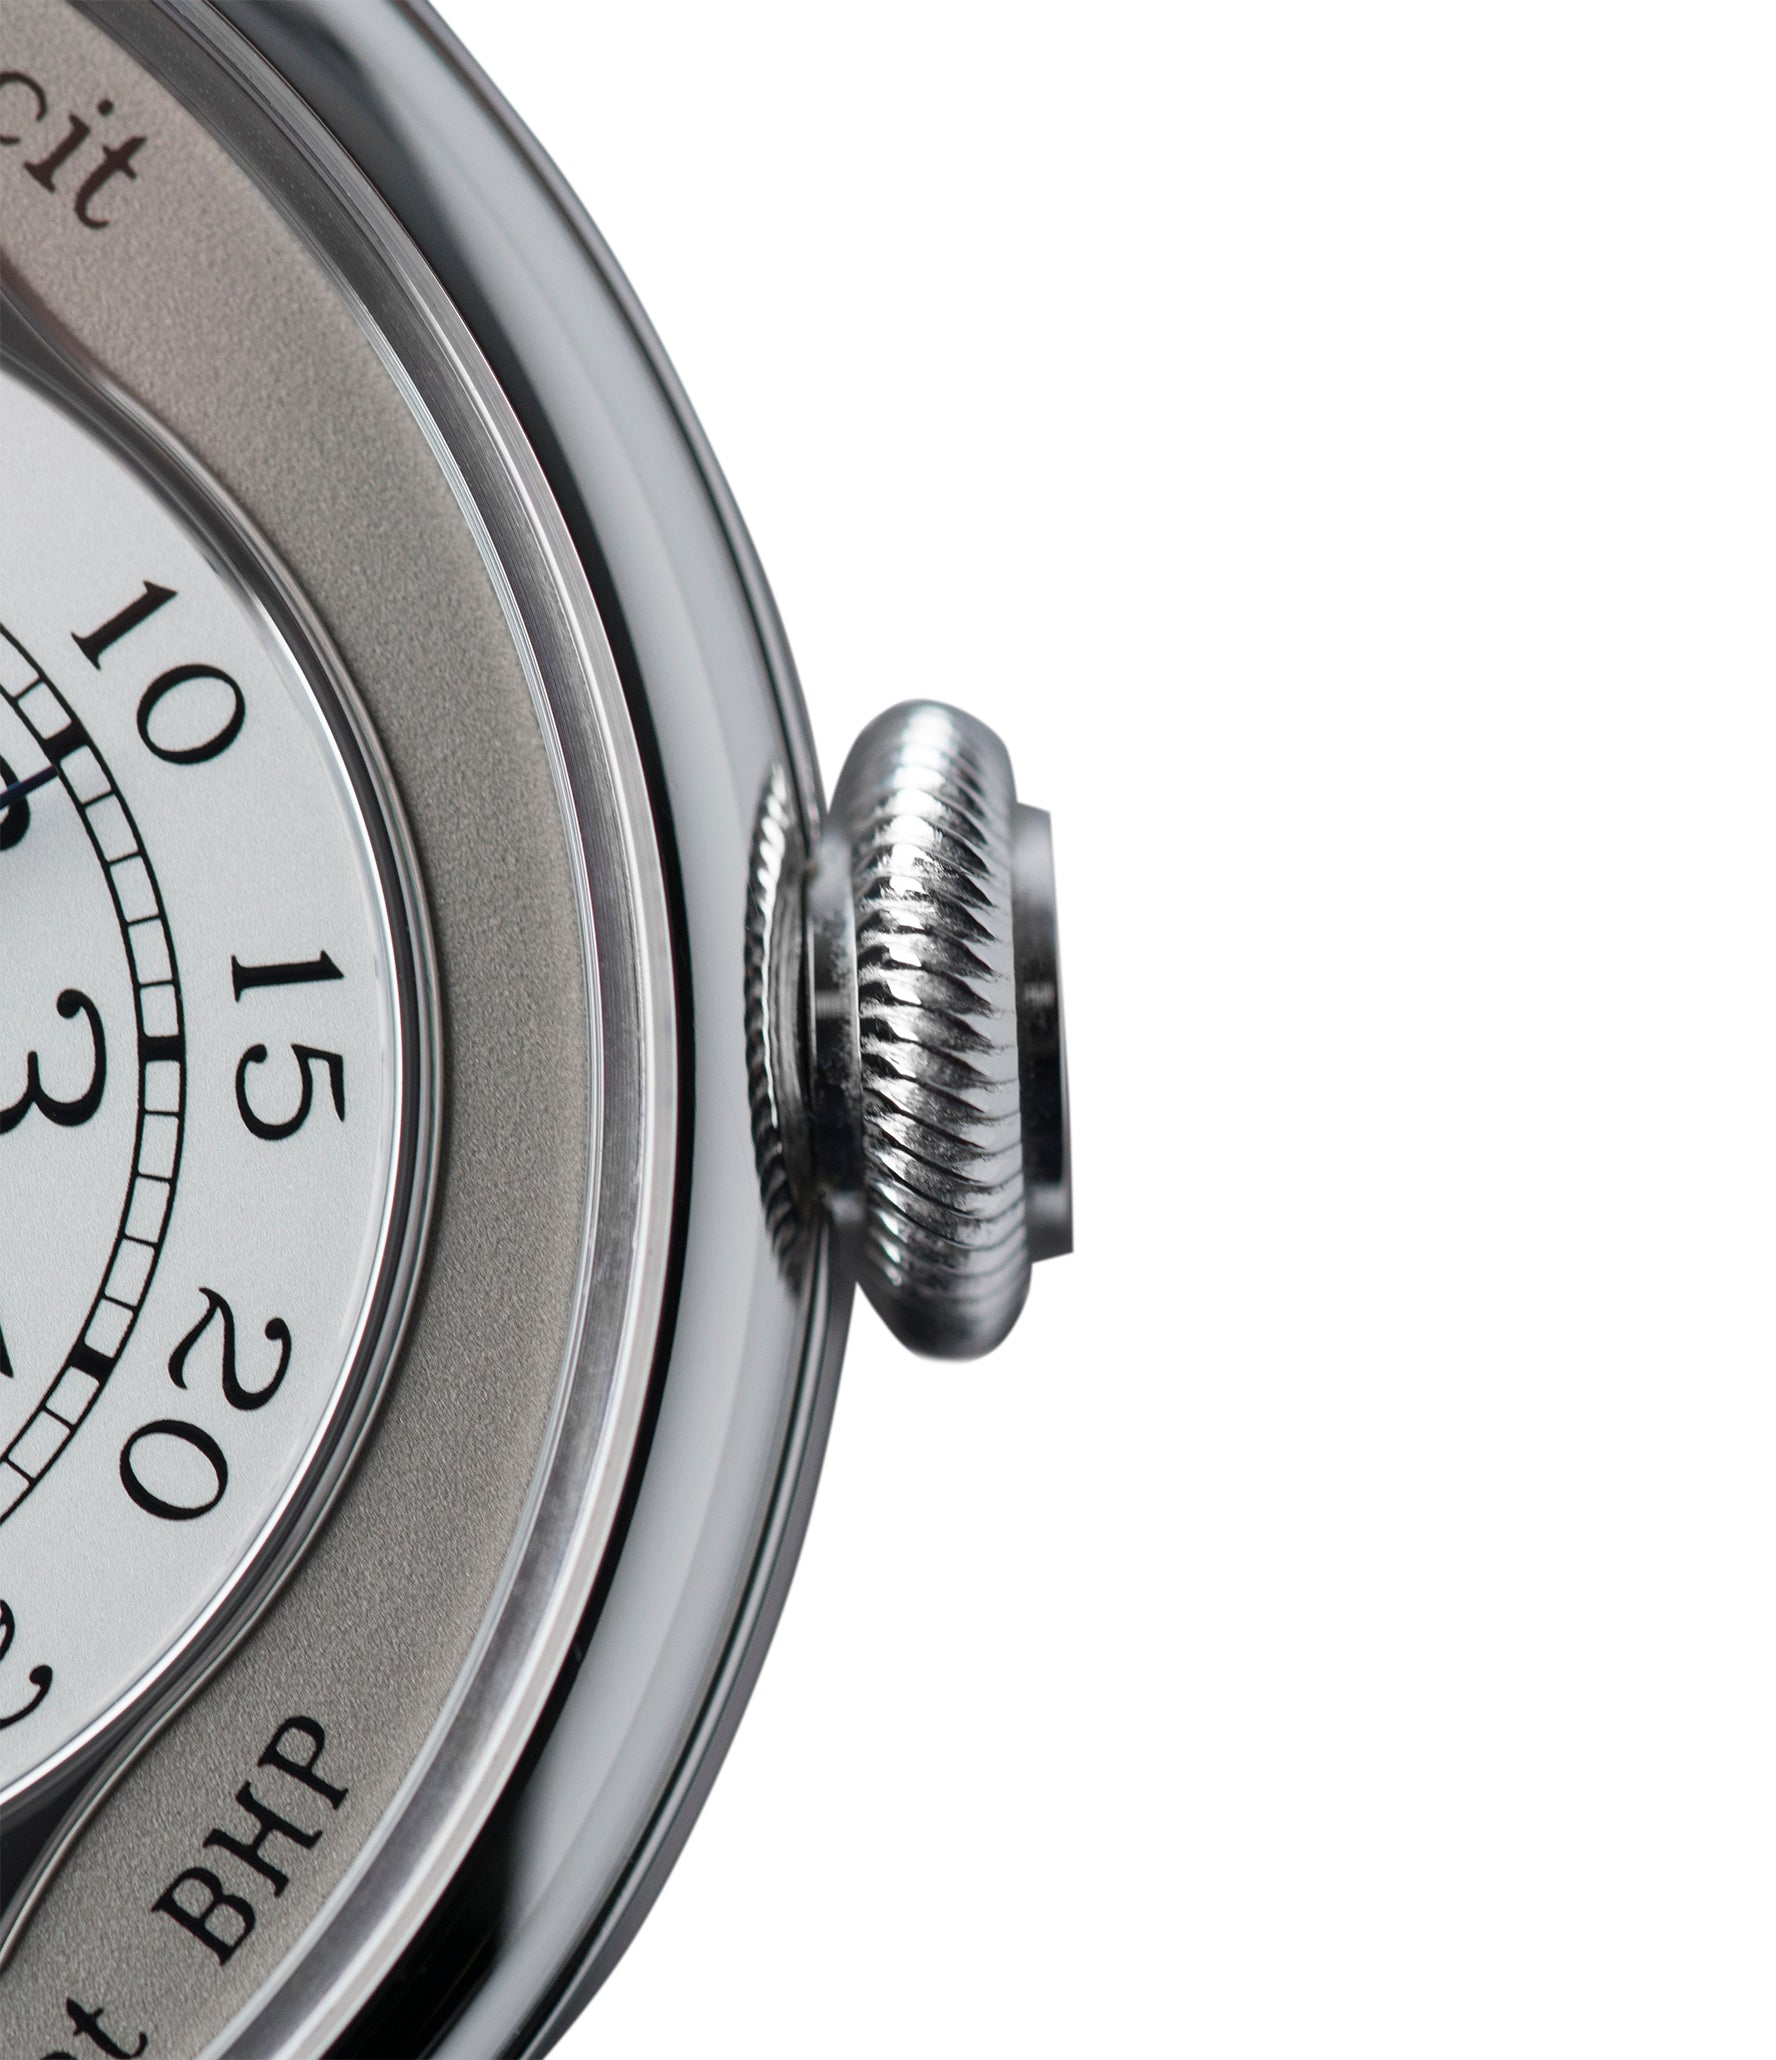 selling independent watchmaker F. P. Journe Chronometre Optimum platinum rare watch for sale online at A Collected Man London approved retailer of independent watchmakers